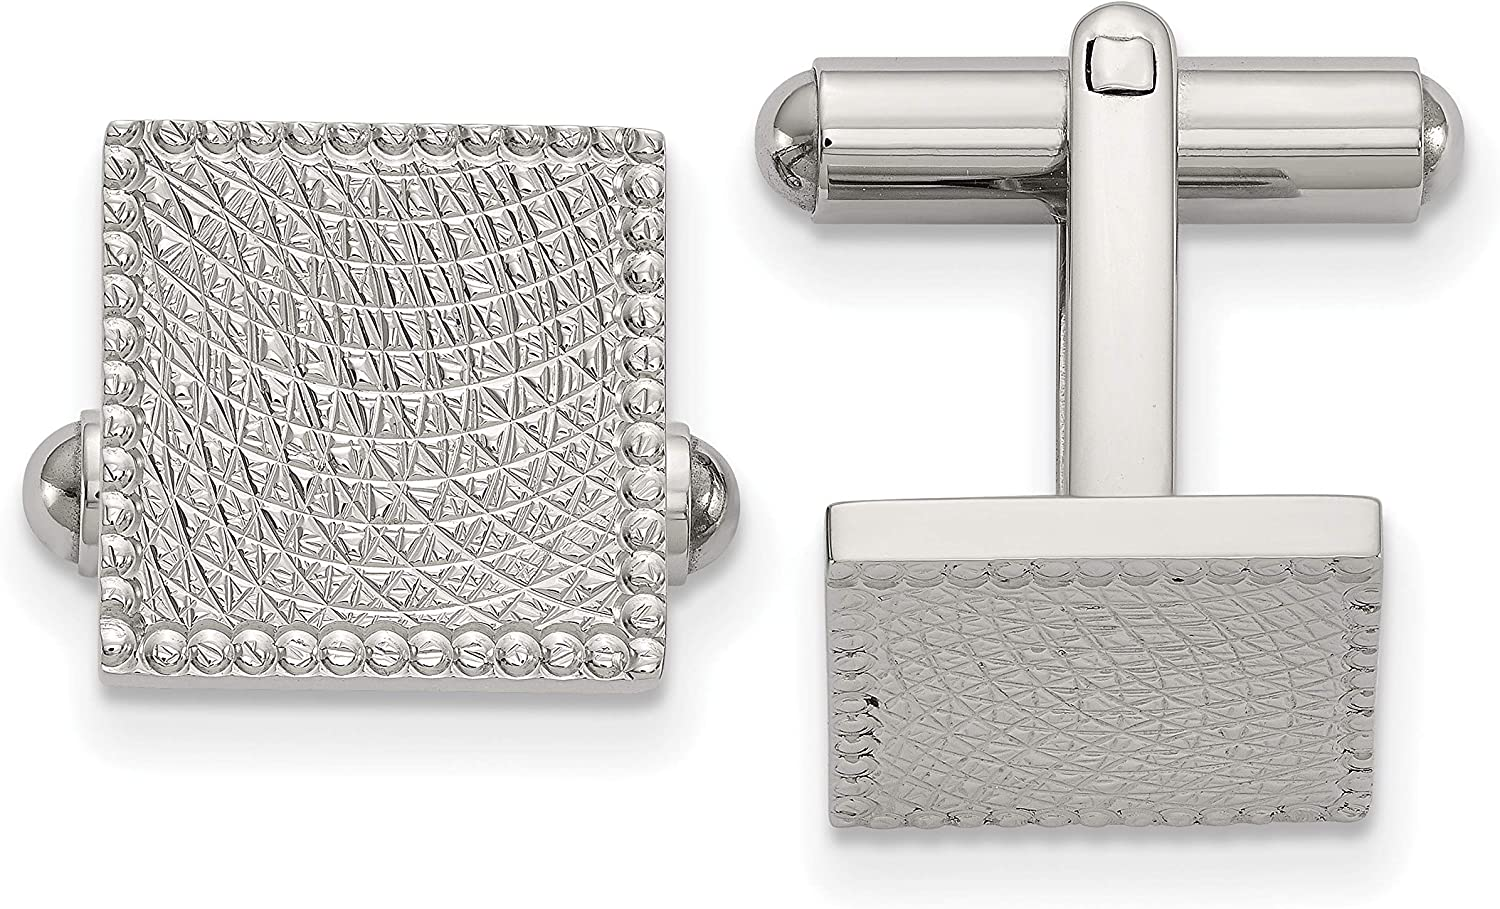 Stainless Steel Polished and Textured Square Cuff Links